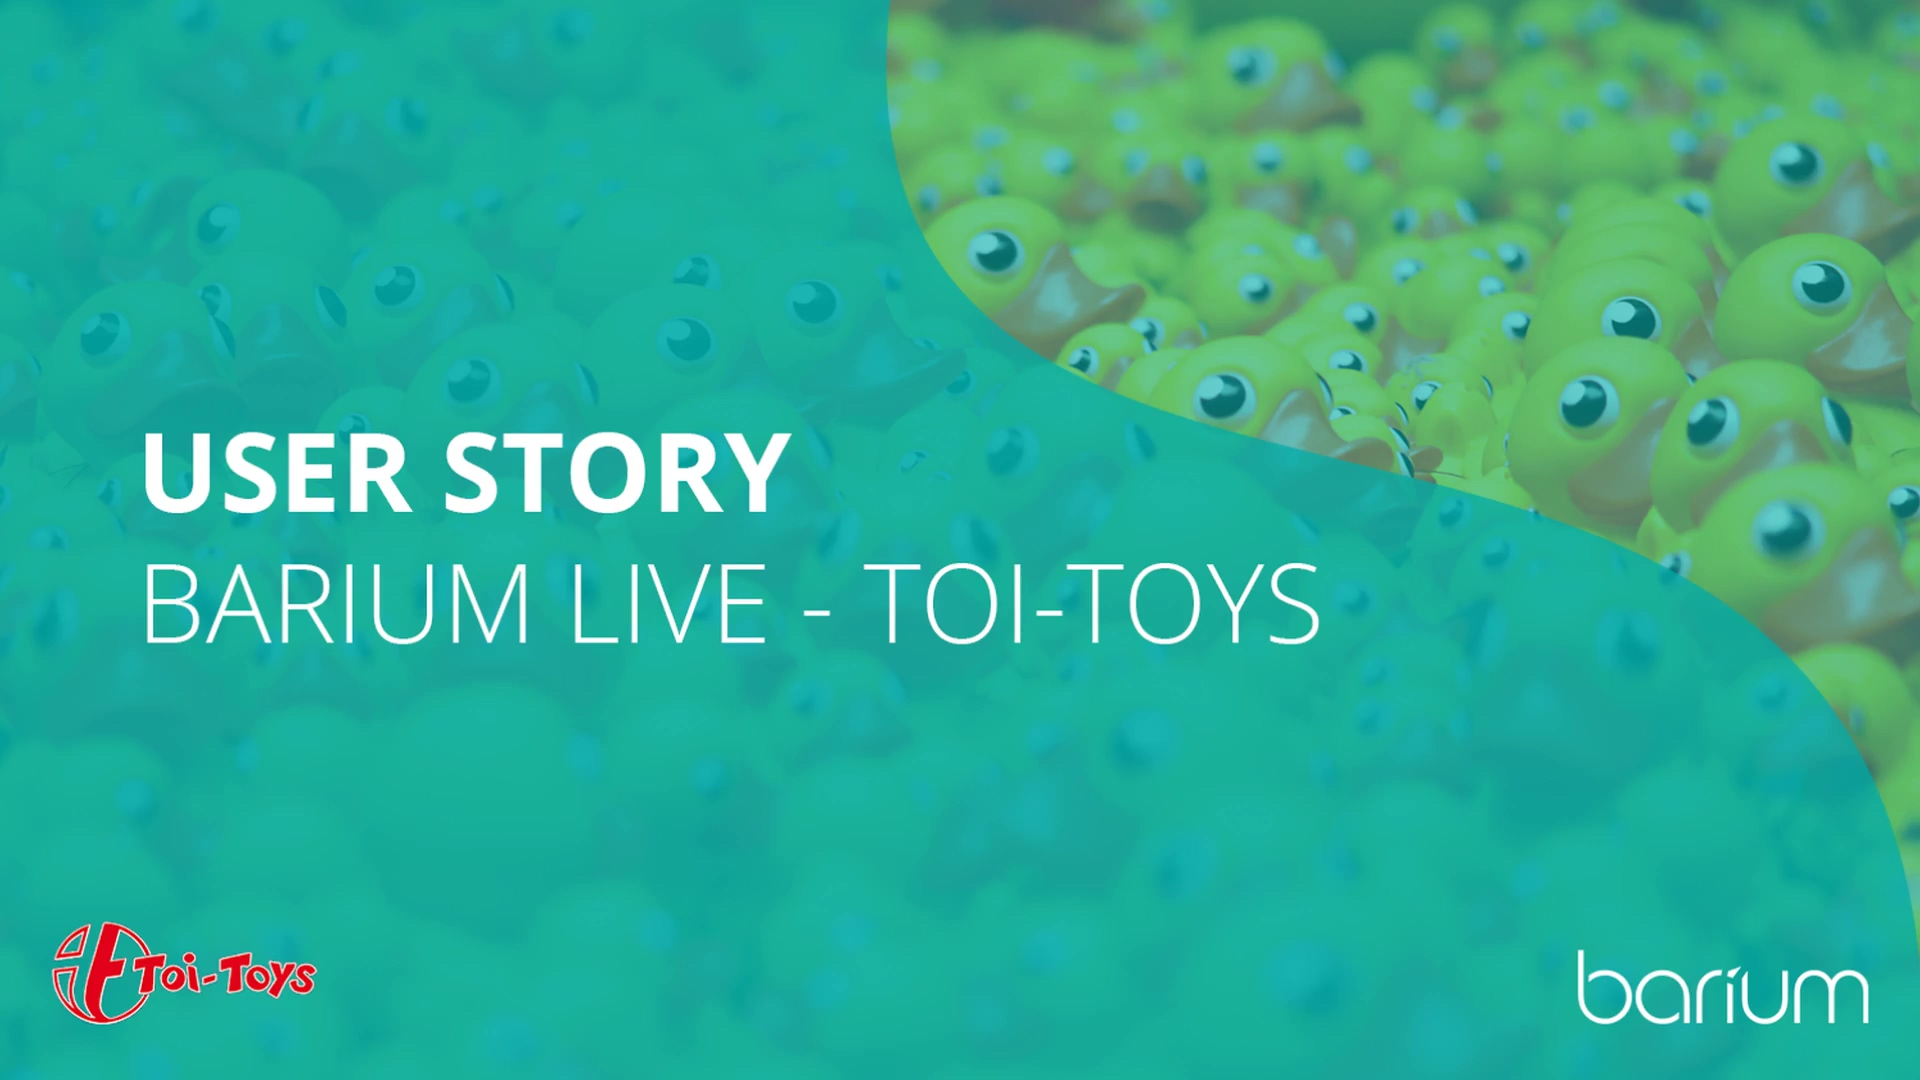 Barium user story | Toi-Toys move for operational excellence